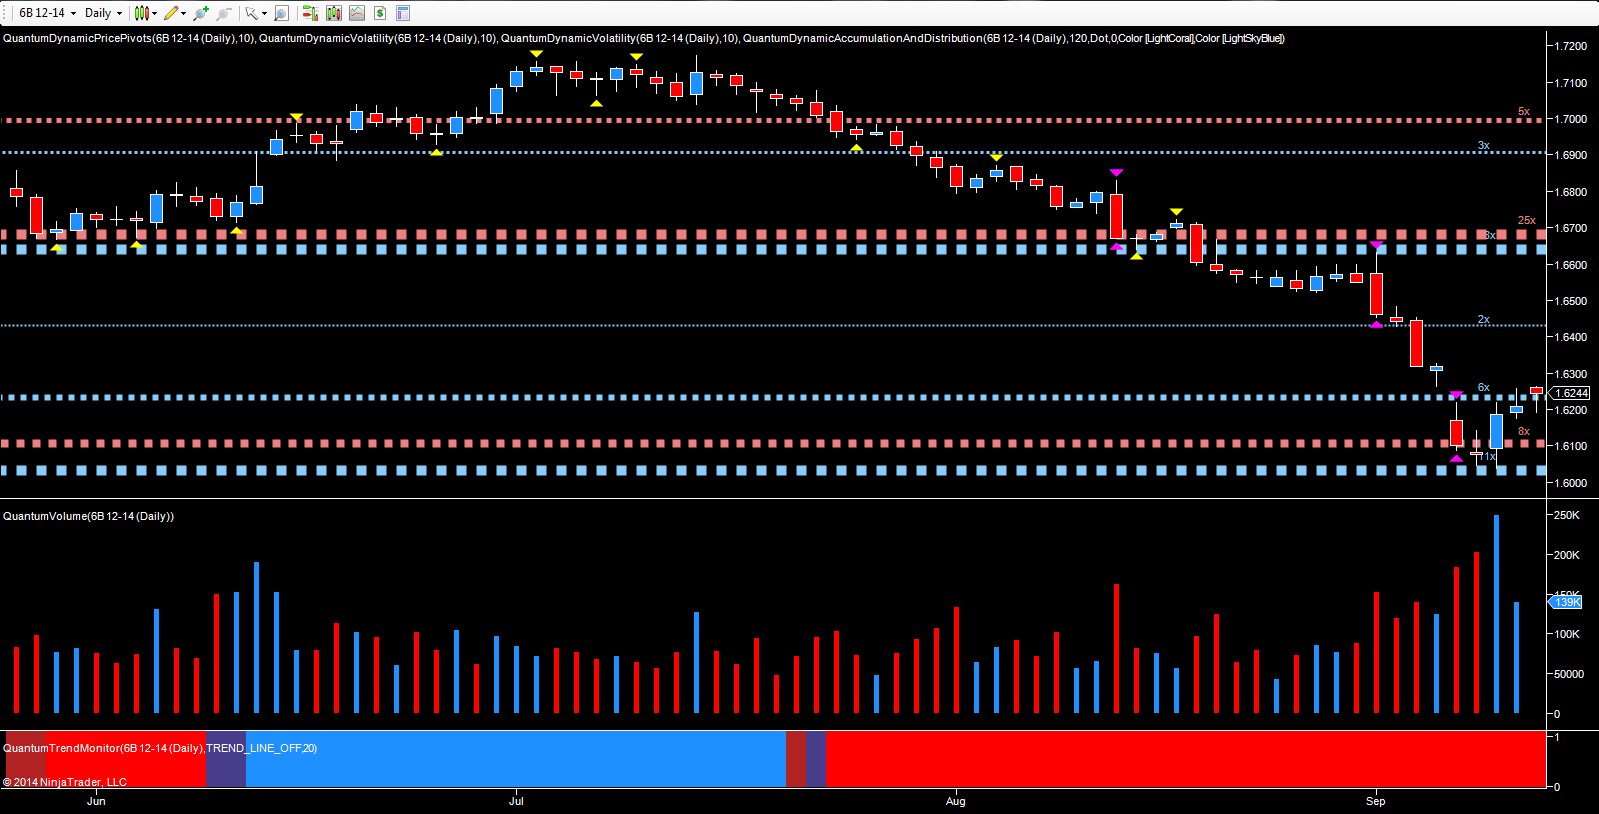 December futures - daily chart GBP/USD